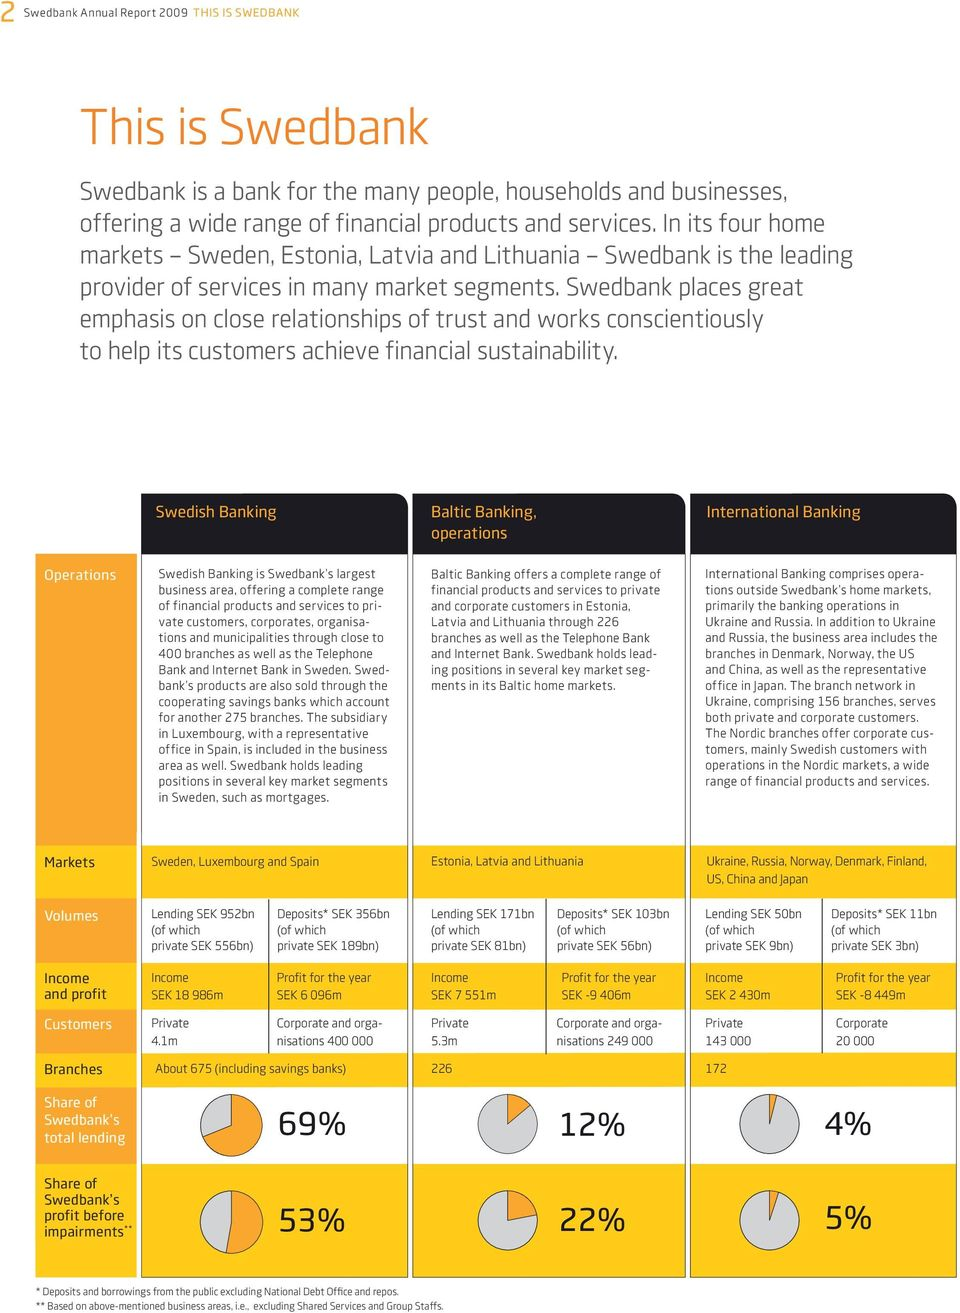 Swedbank places great emphasis on close relationships of trust and works conscientiously to help its customers achieve financial sustainability.